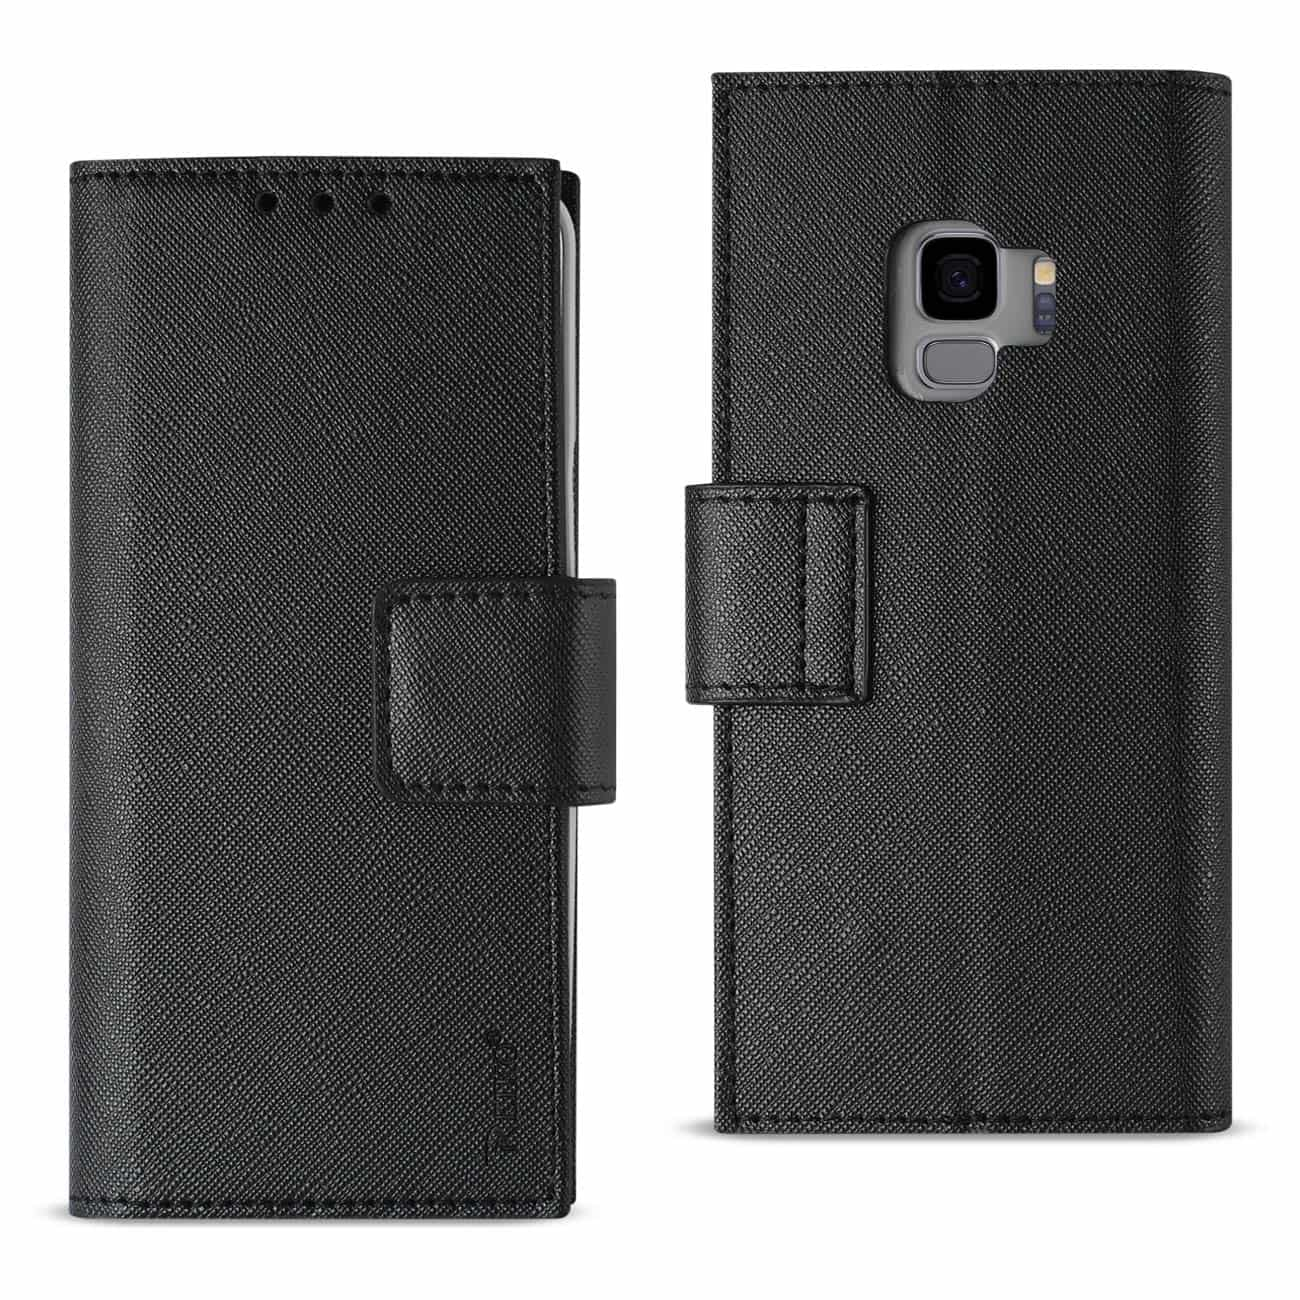 Samsung Galaxy S9 3-In-1 Wallet Case In Black